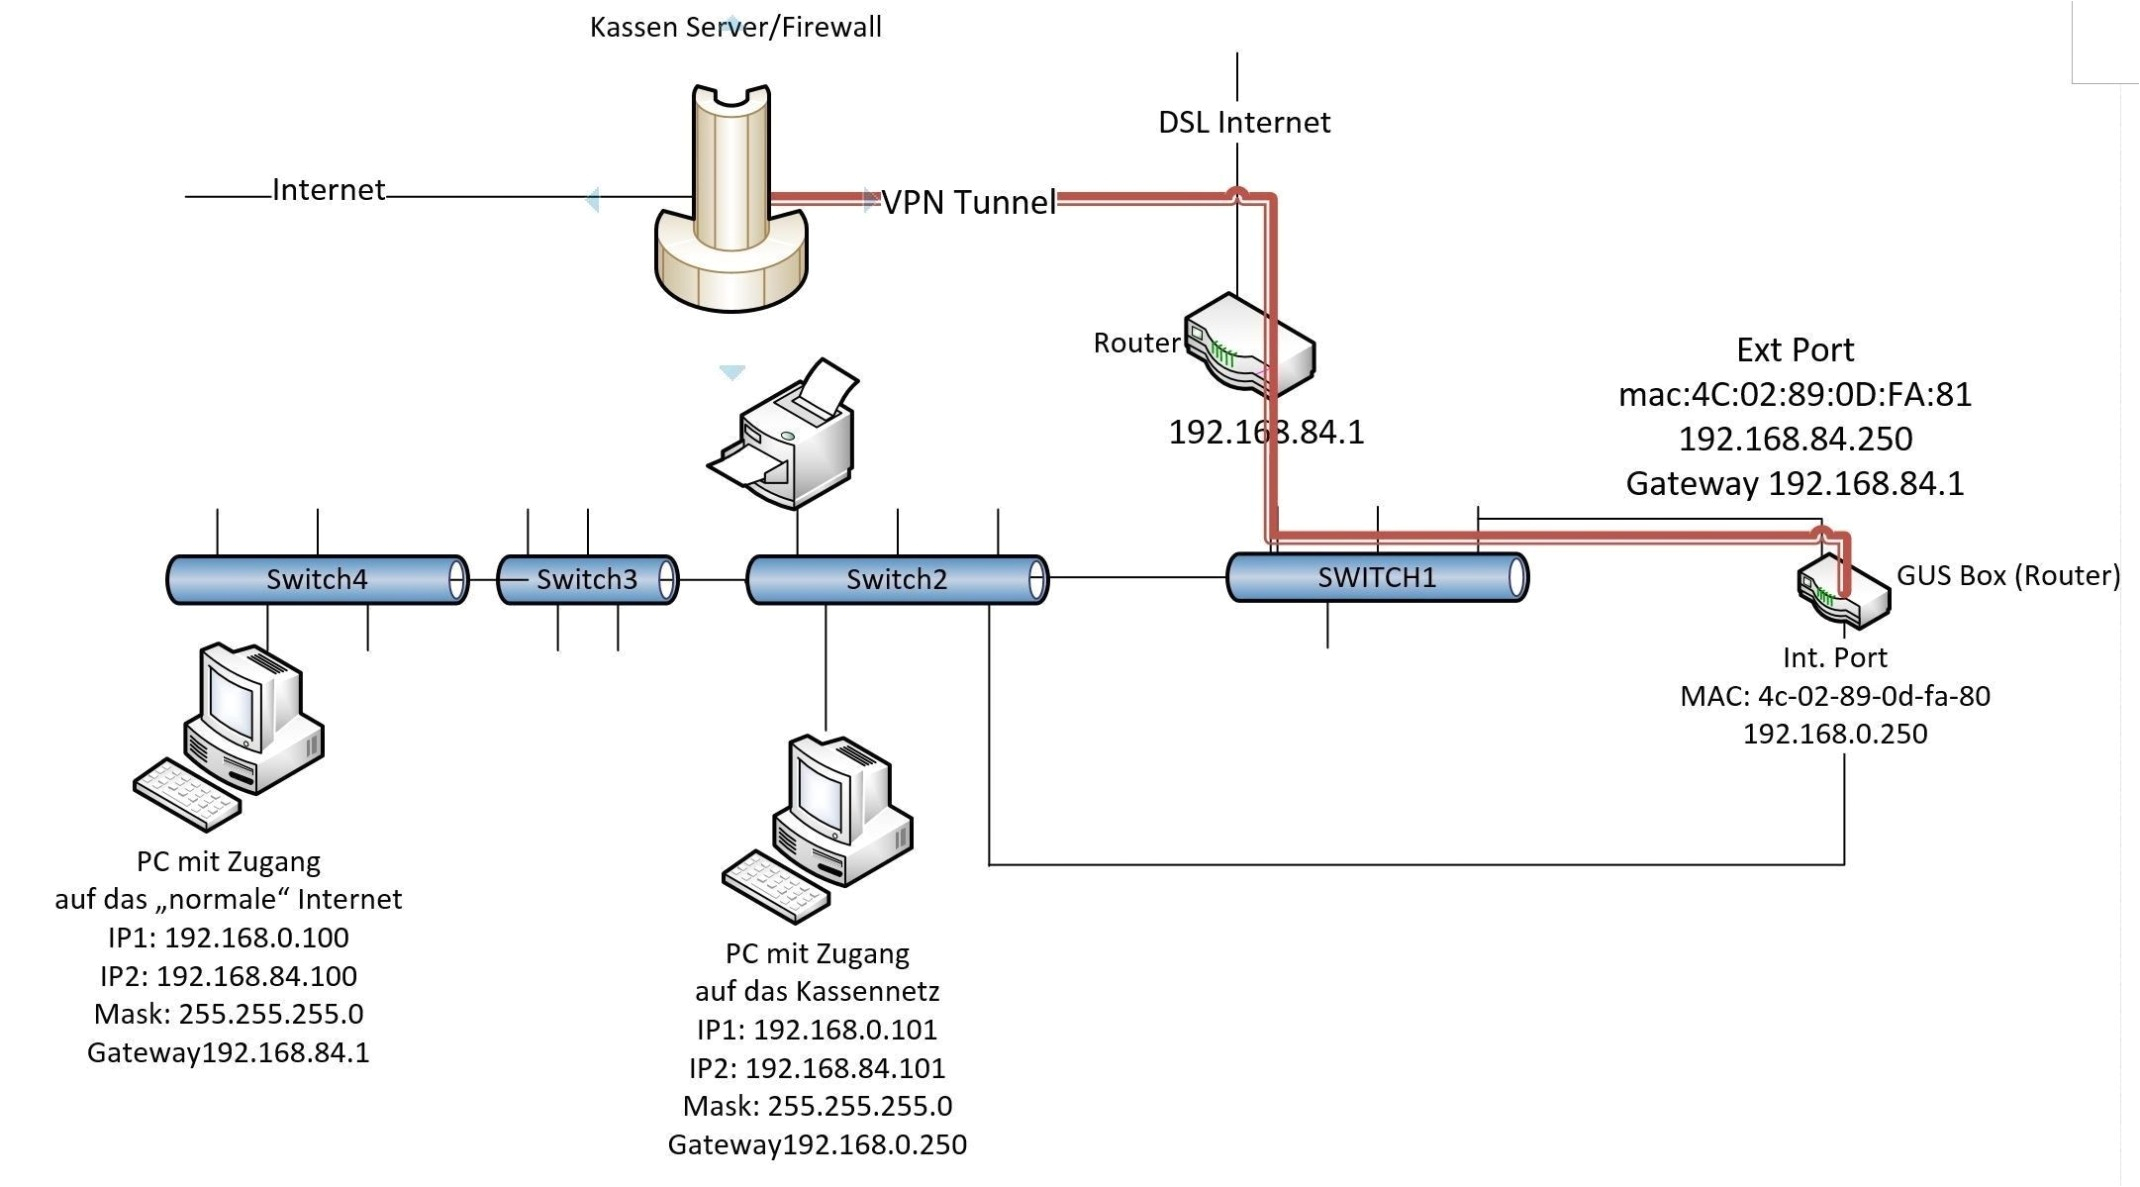 Wiring Diagram for Home Network Home Network Layout Best Of Network Wiring Diagrams Rate Coil Wiring